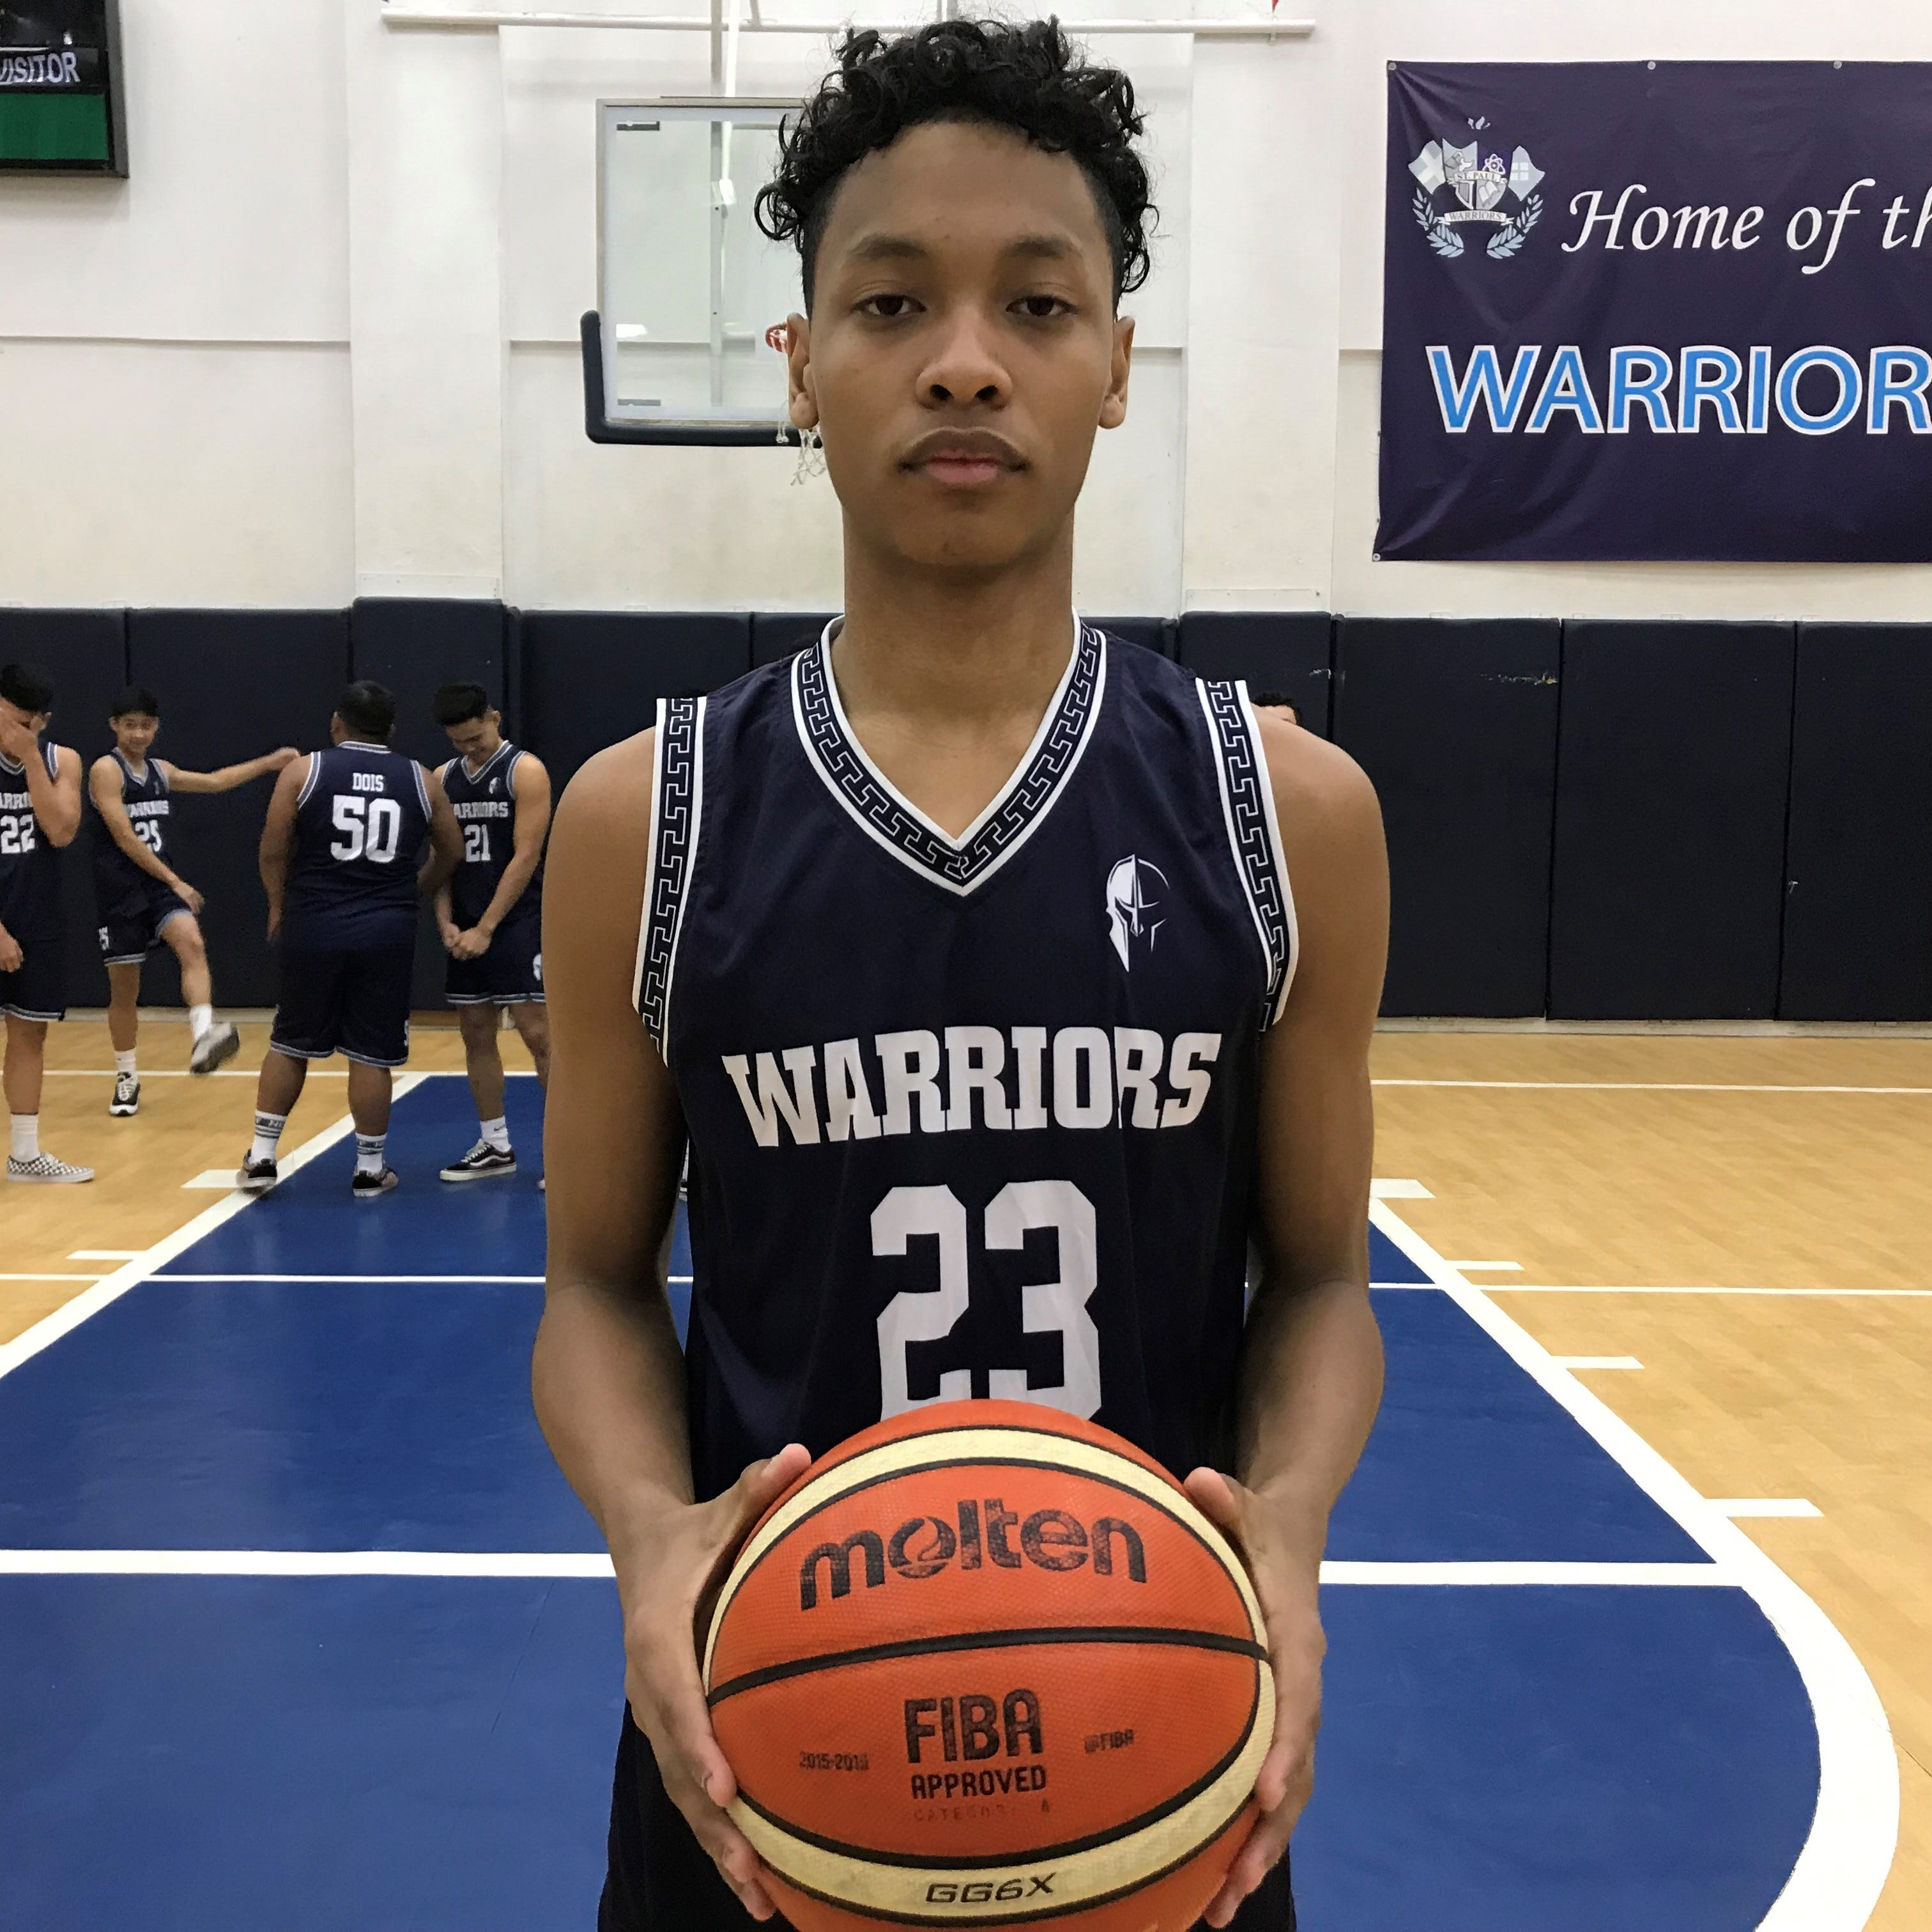 Warriors boys dominant in ACSC title win